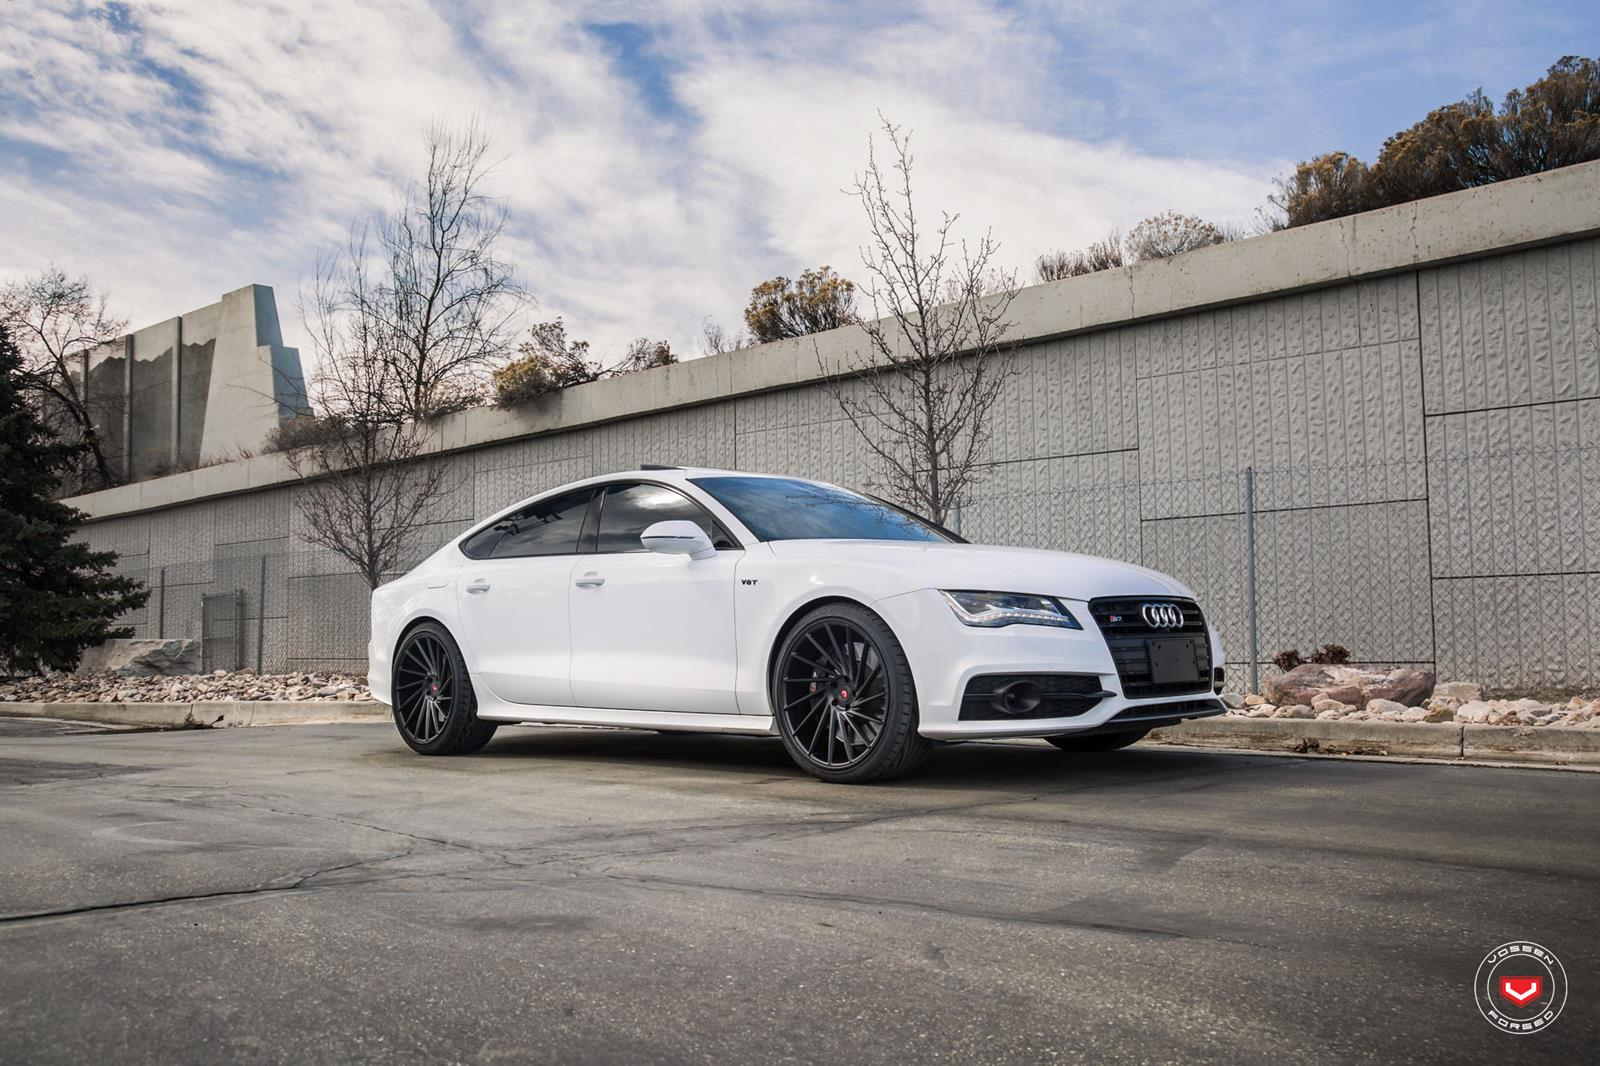 Audi S7 Vossen Forged Precision Series Vps 305t